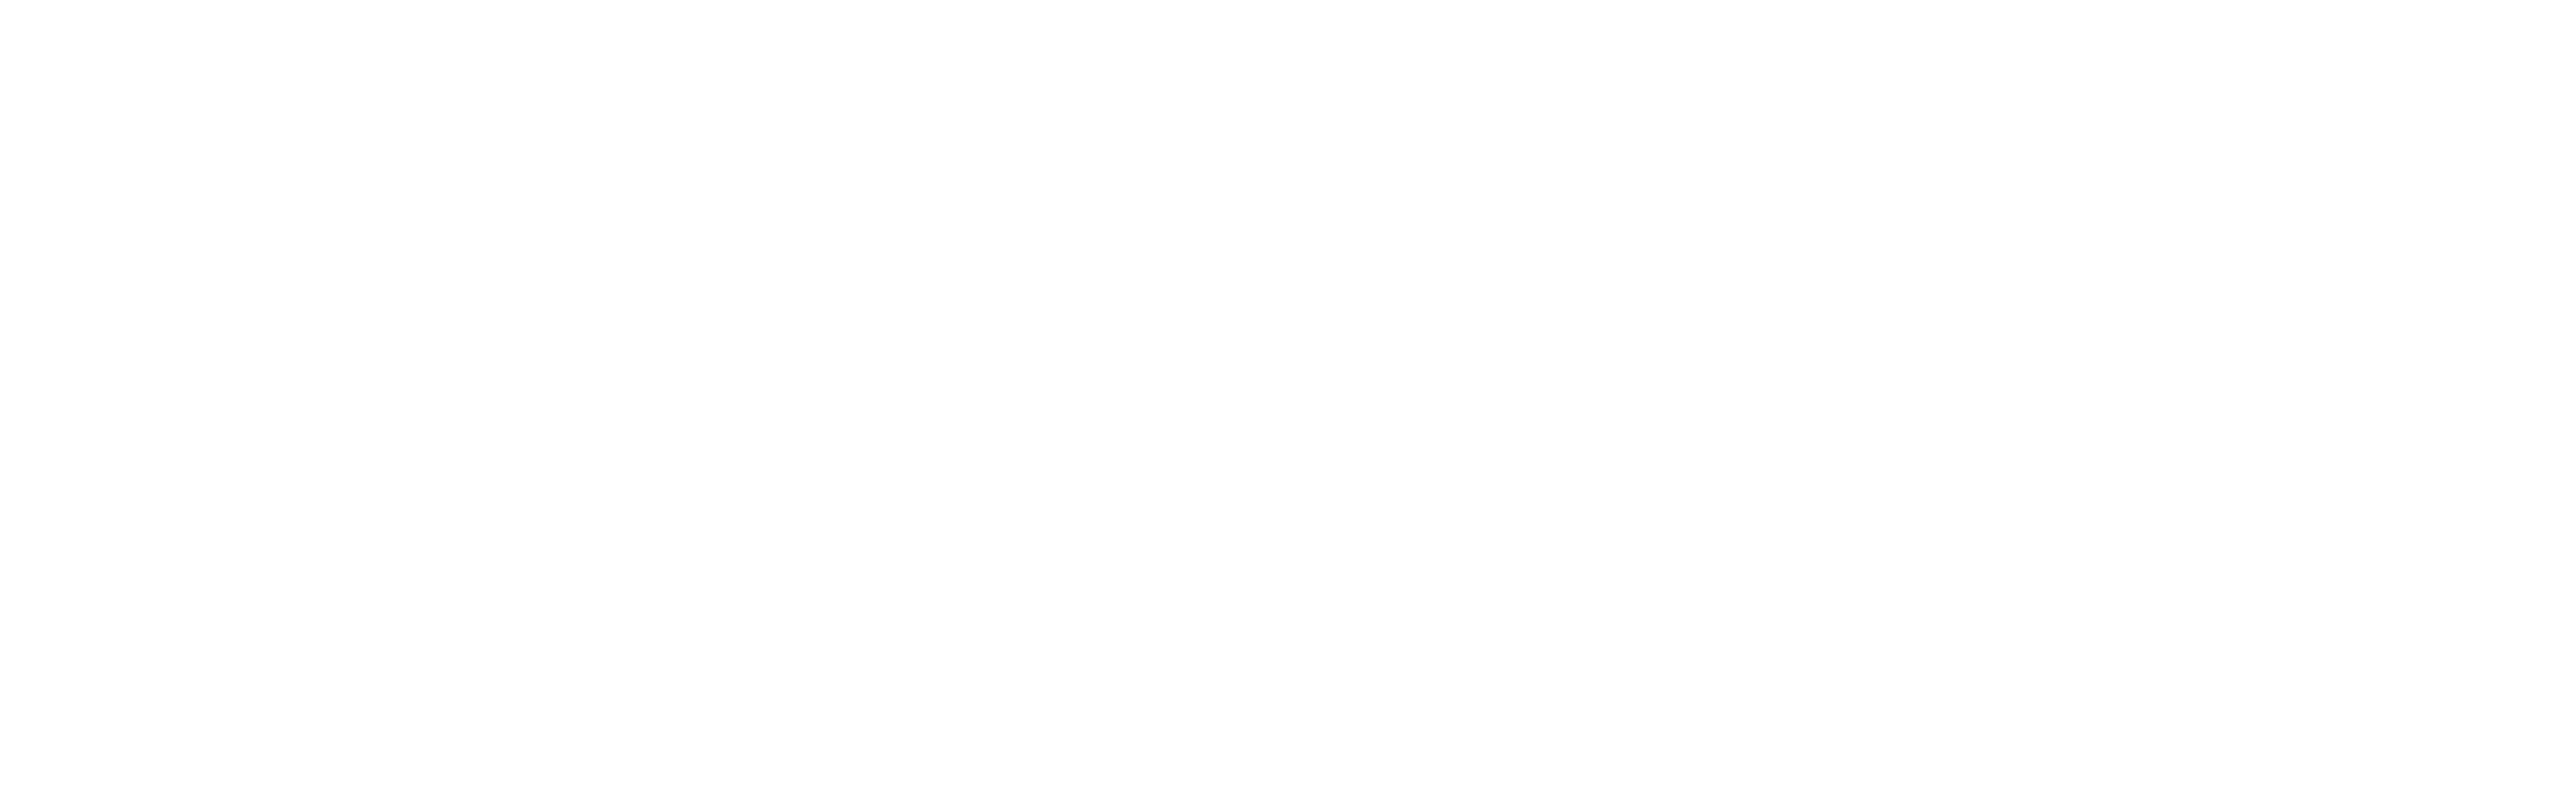 Band Pencil logo